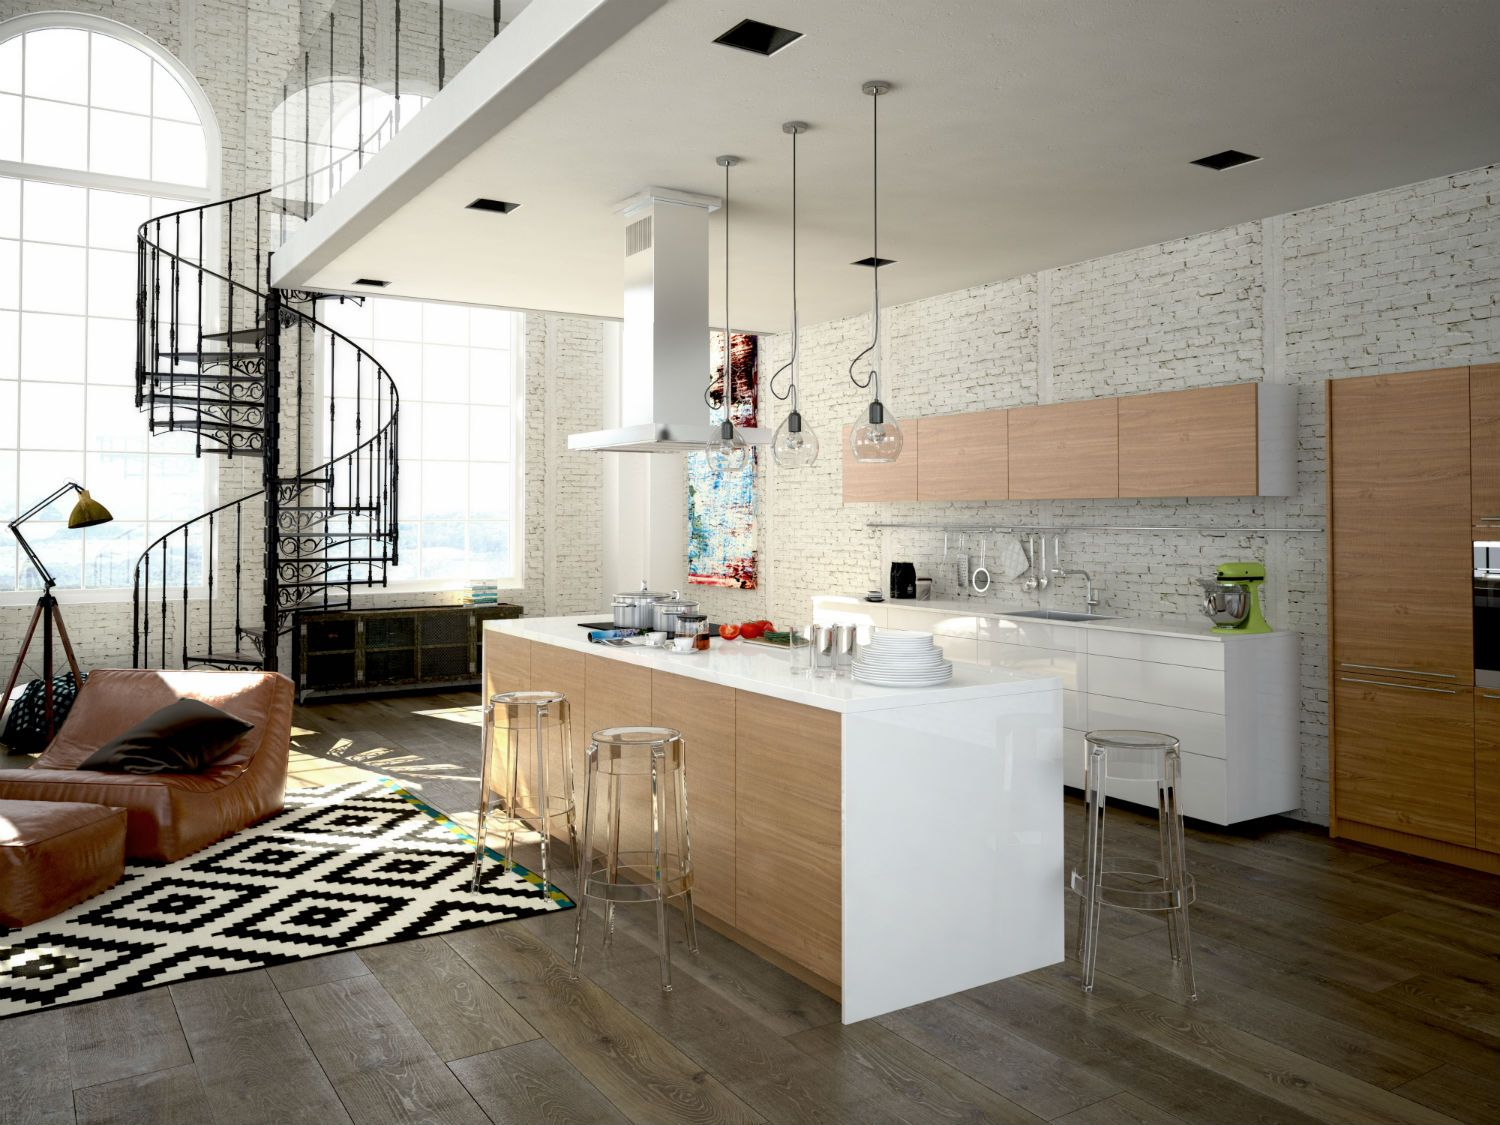 8 Kitchen Trends To Give Your Home A New Culinary Edge